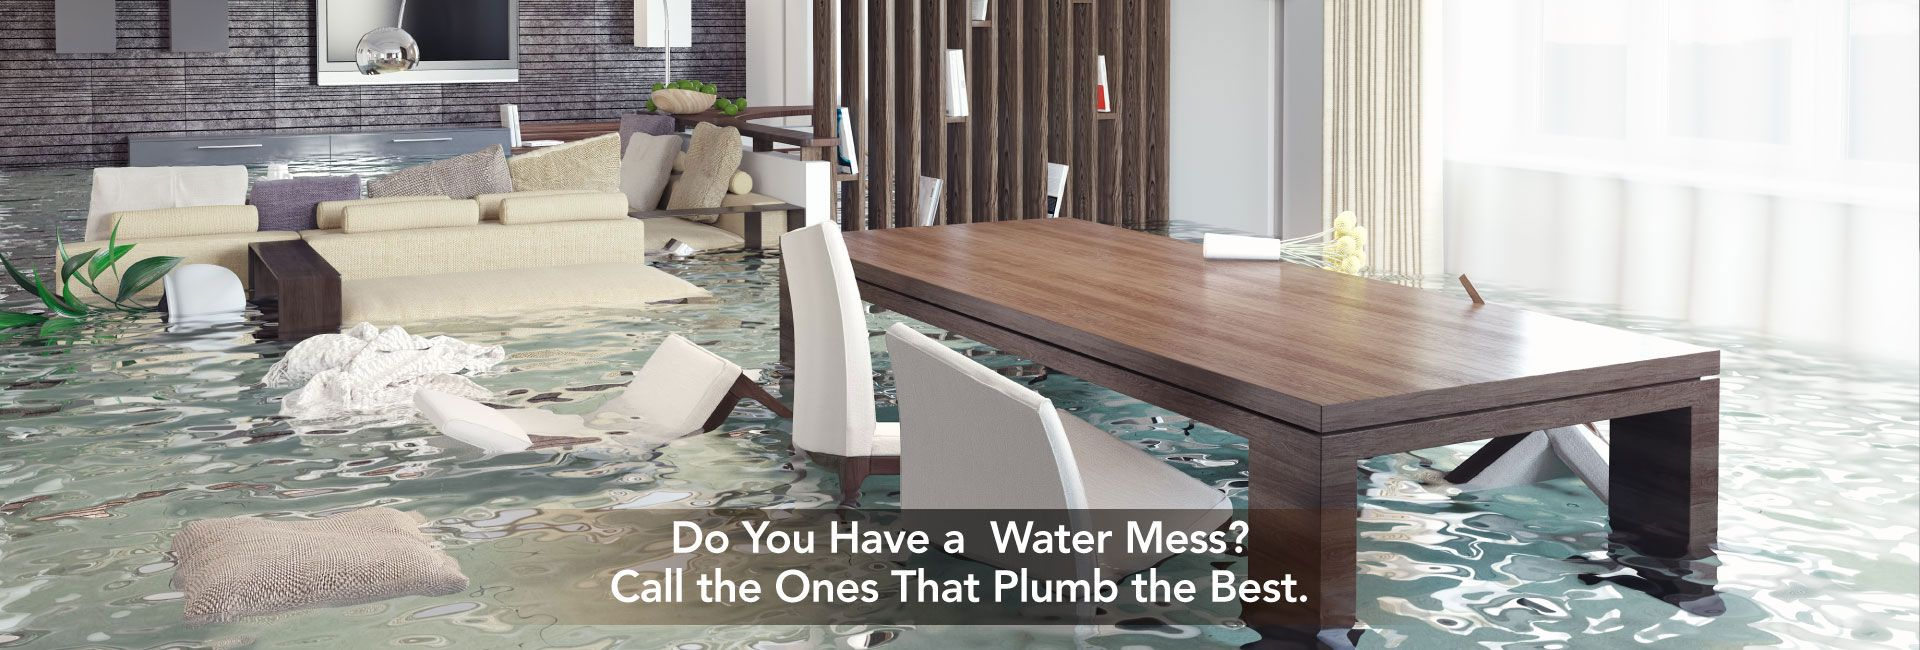 Do You Have a Water Mess? Call the Ones That Plumb the Best.